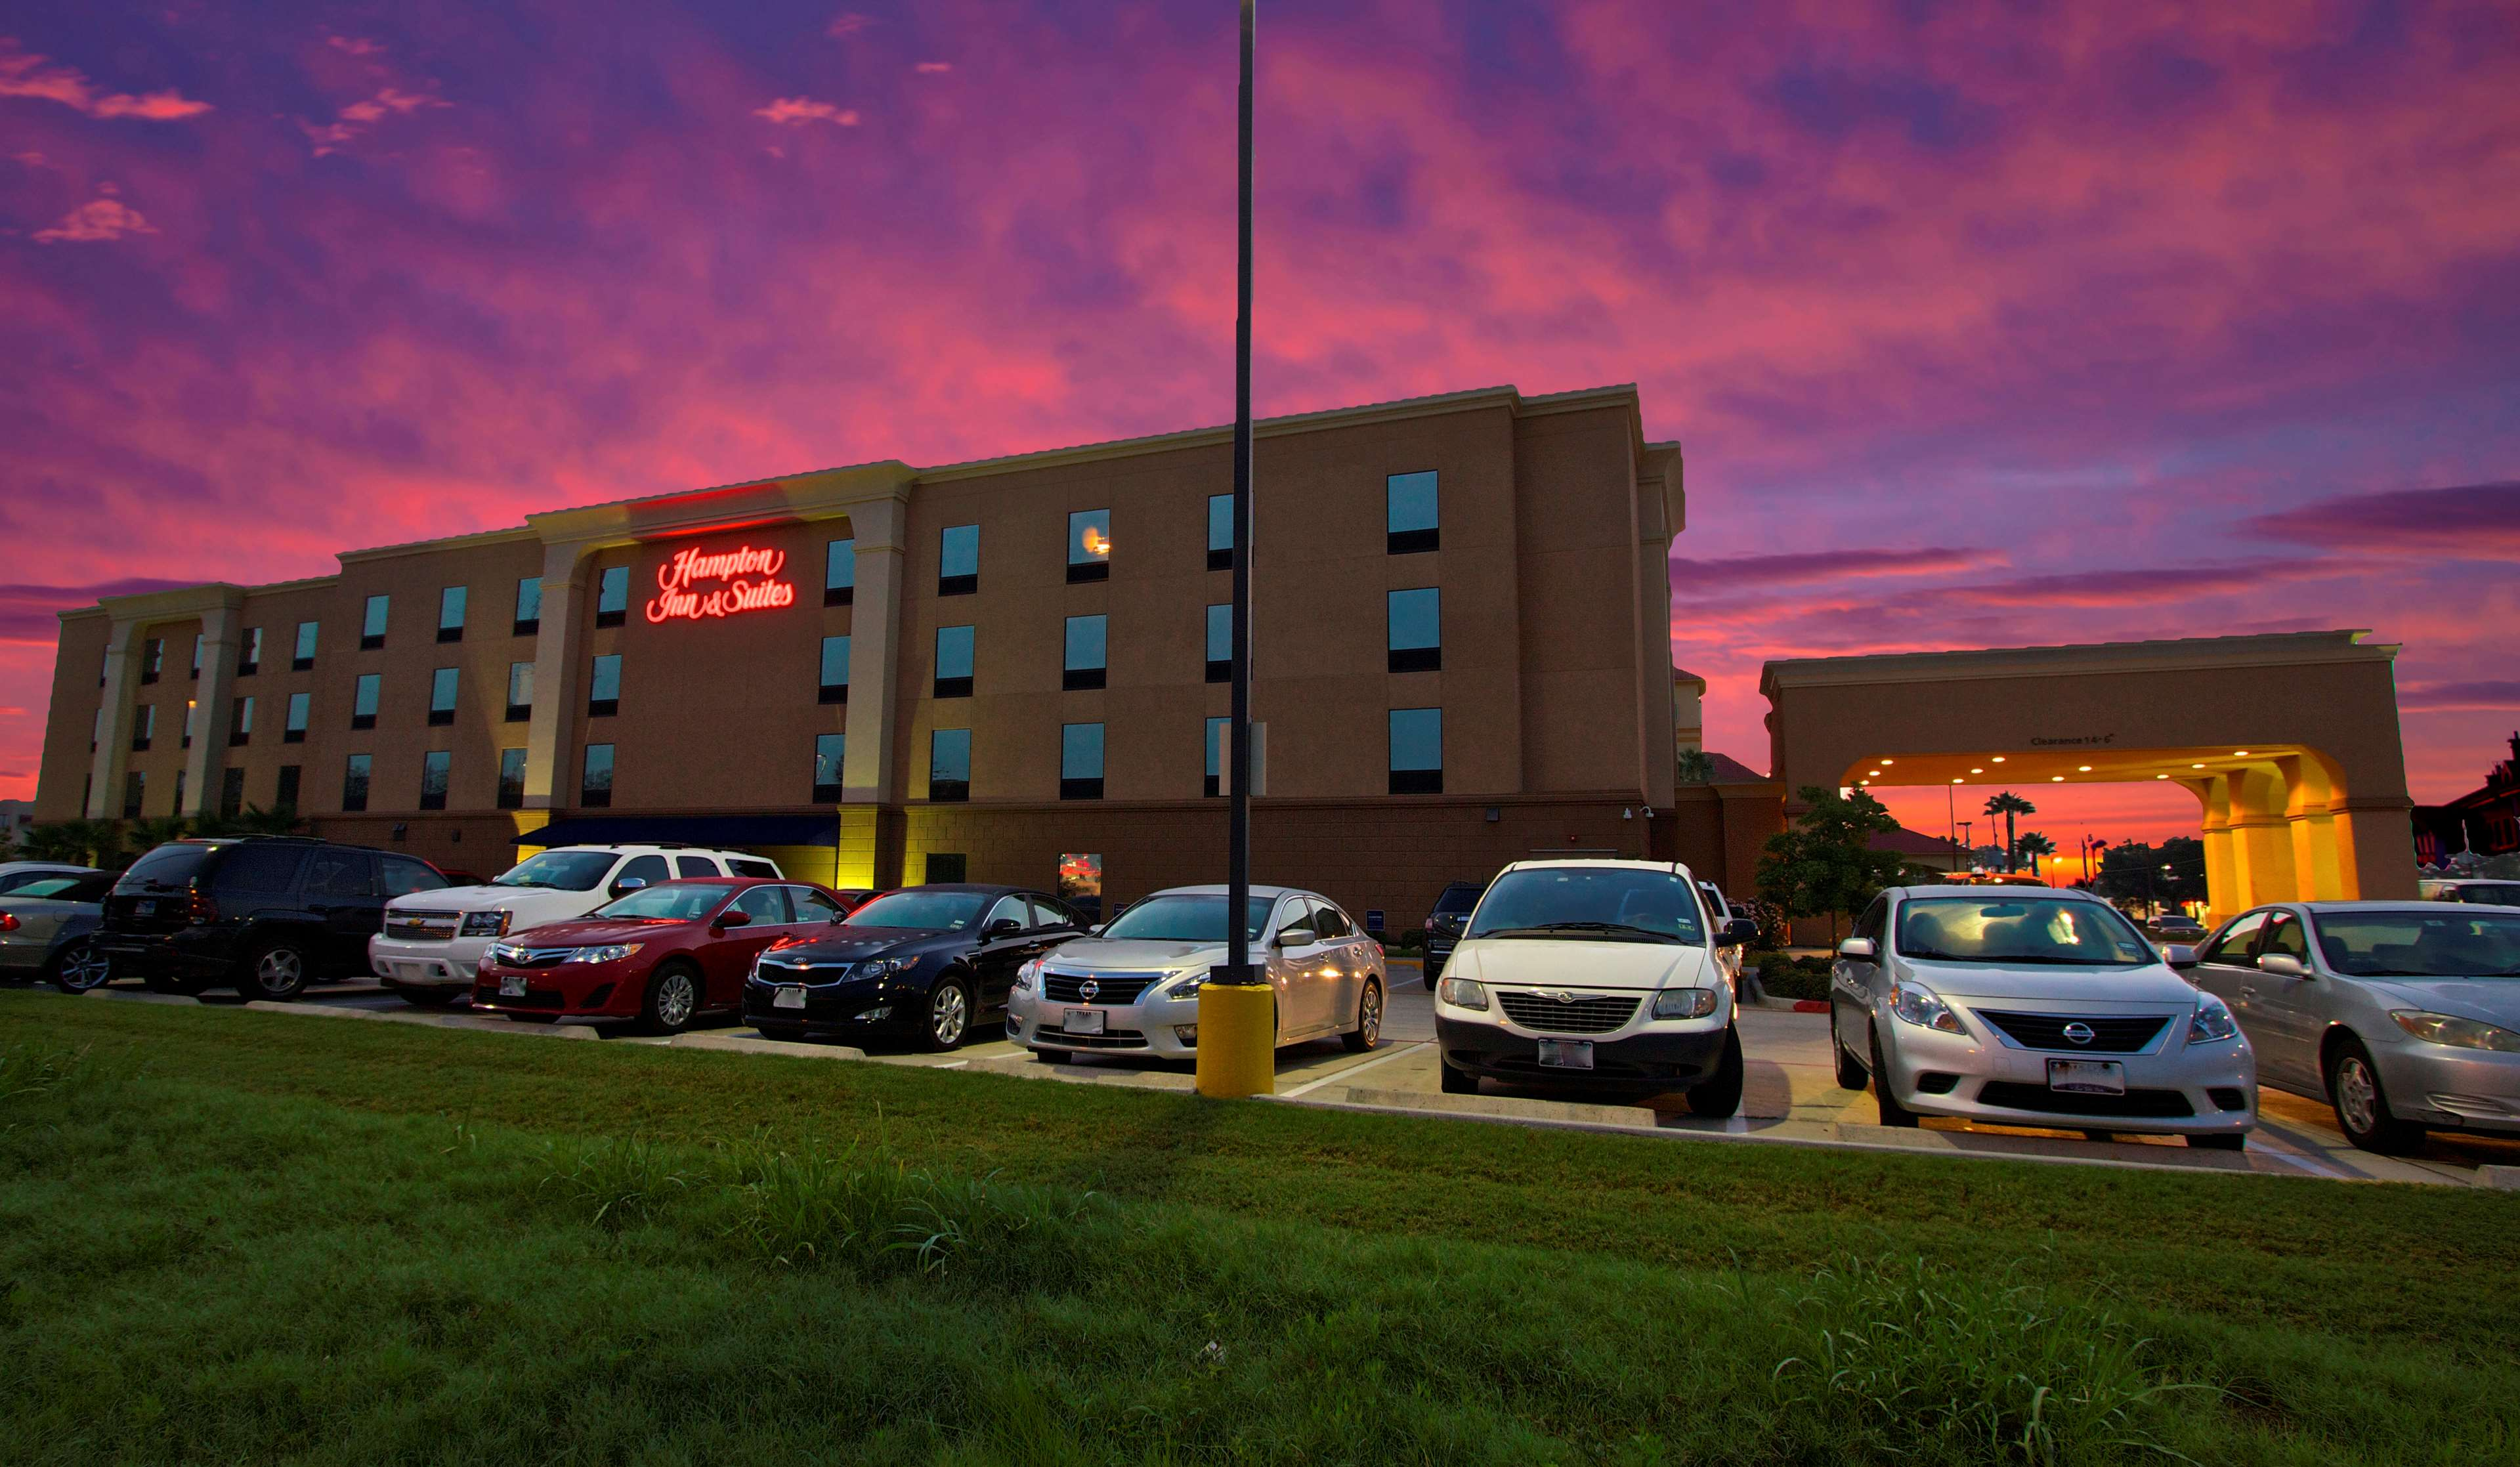 Hampton Inn & Suites Tomball Houston NW